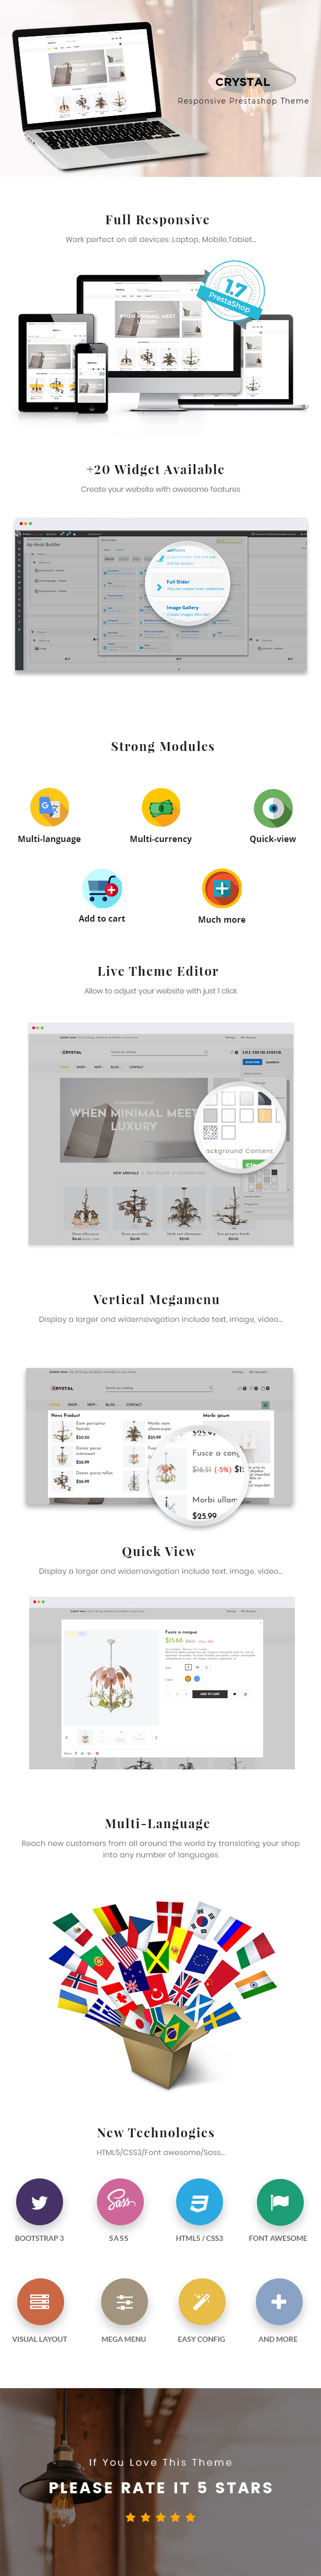 At Crystal Prestashop Theme